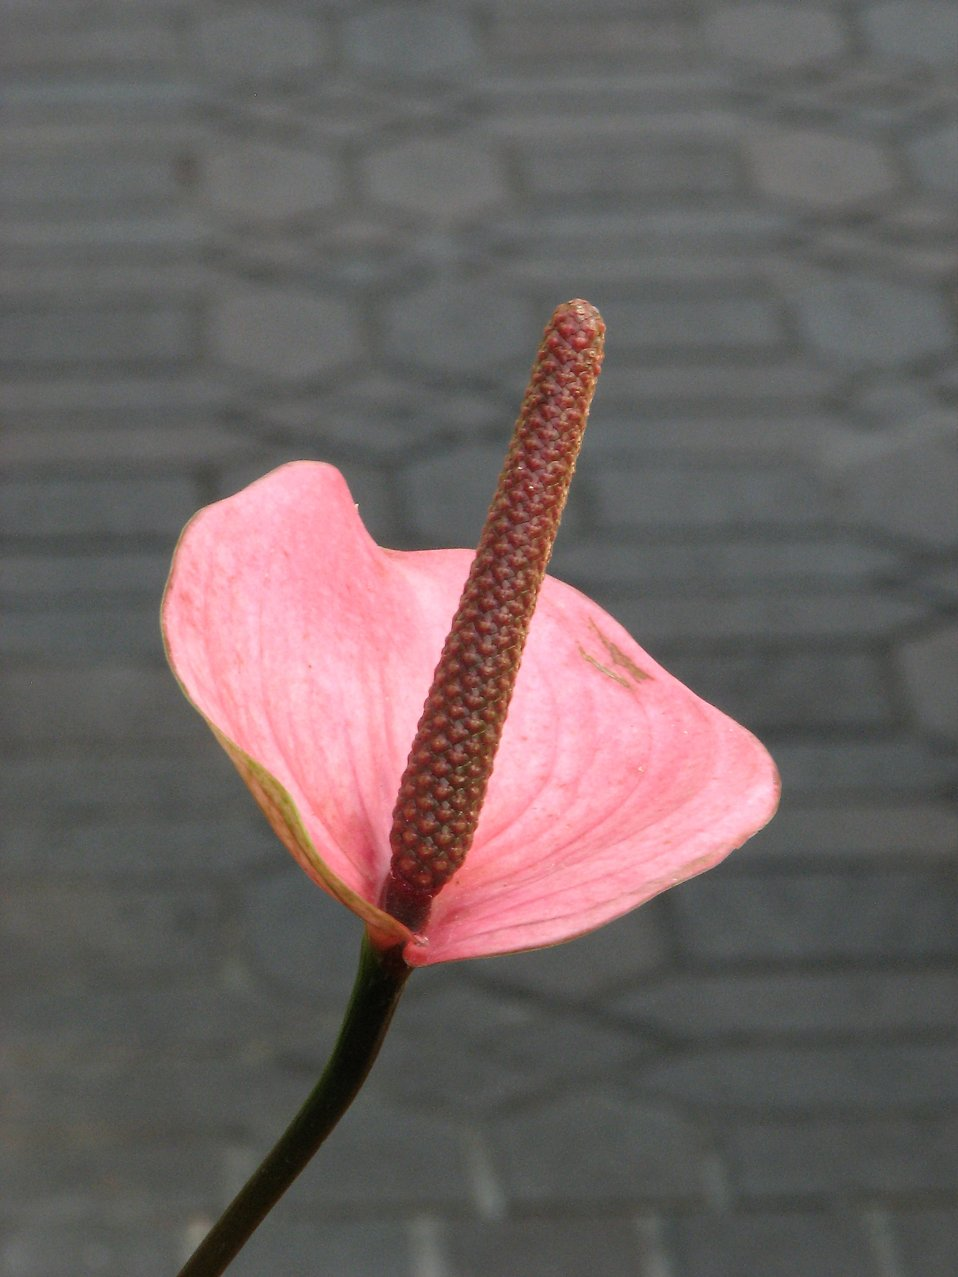 Lillies Free Stock Photo Closeup Of A Pink Peace Lily Flower